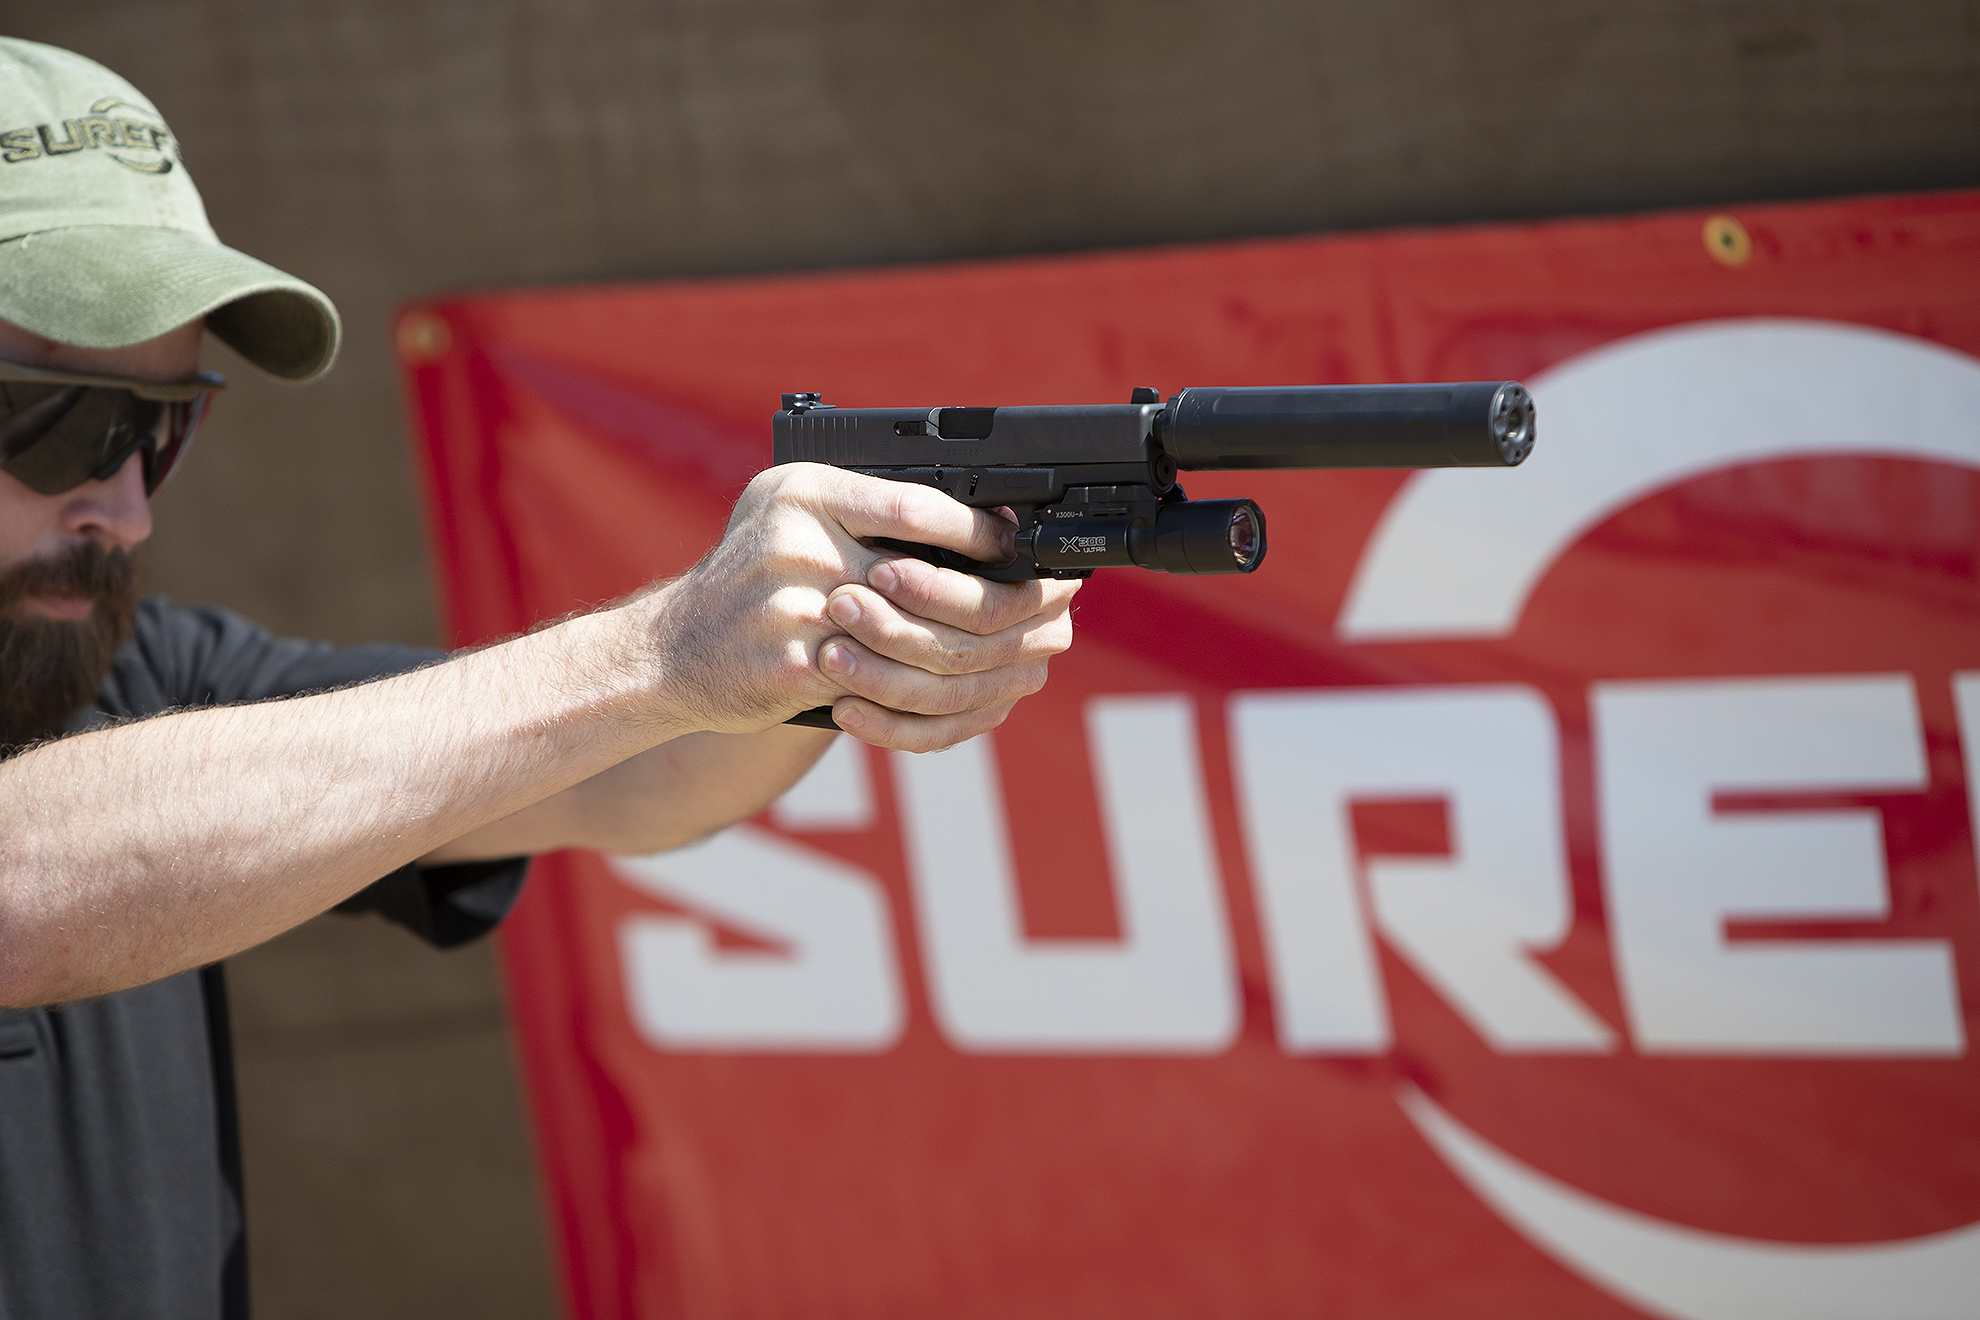 SureFire SF RYDER pistol suppressor range day